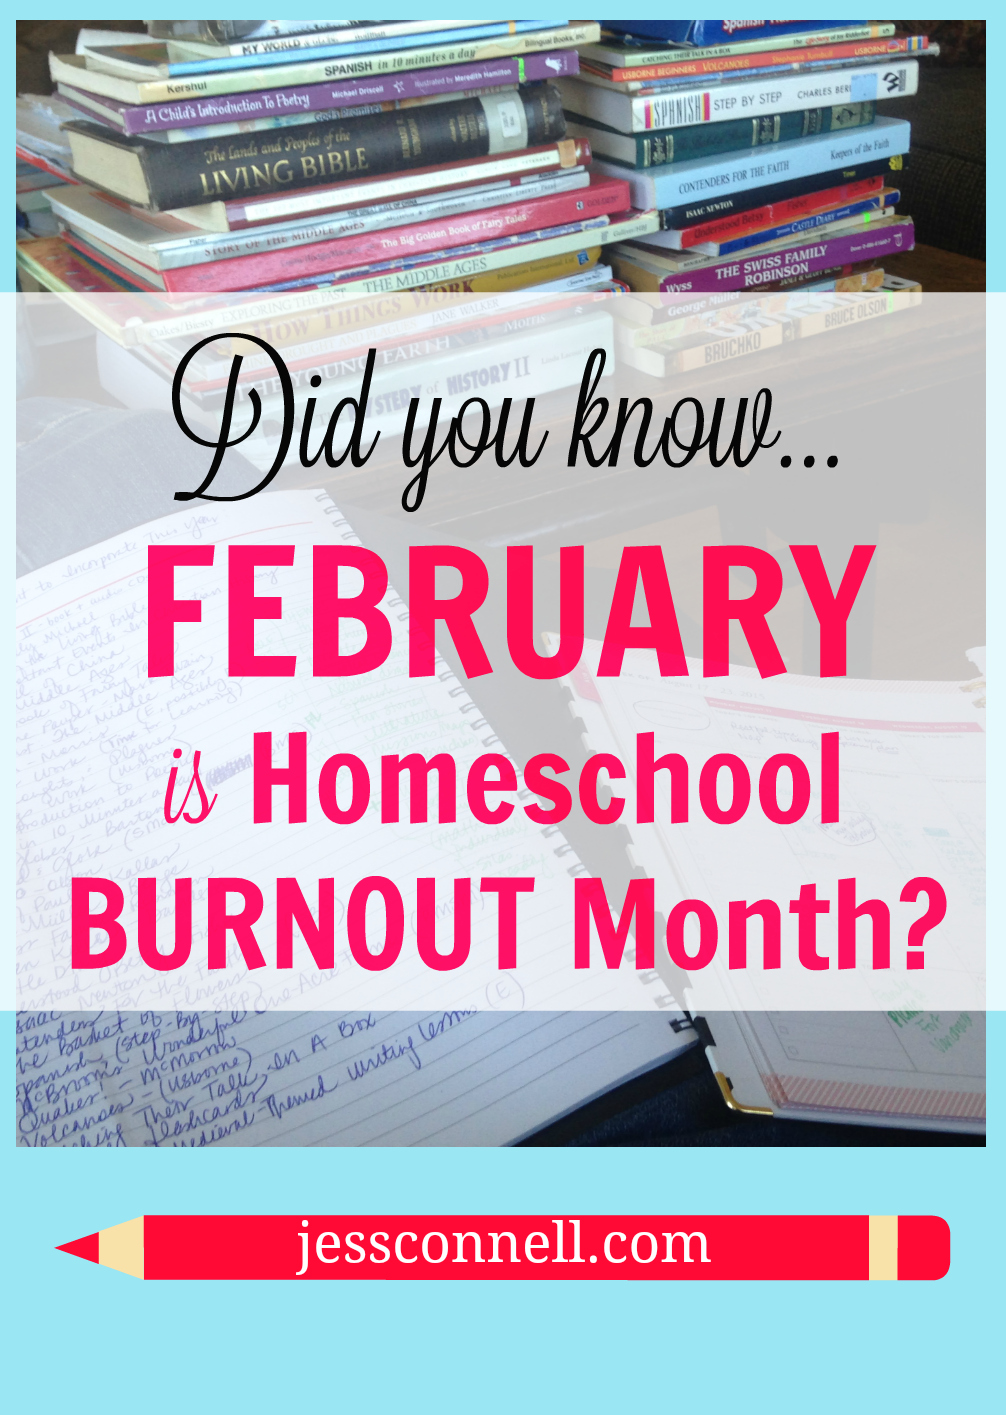 Did You Know February is HOMESCHOOL BURNOUT Month? // jessconnell.com